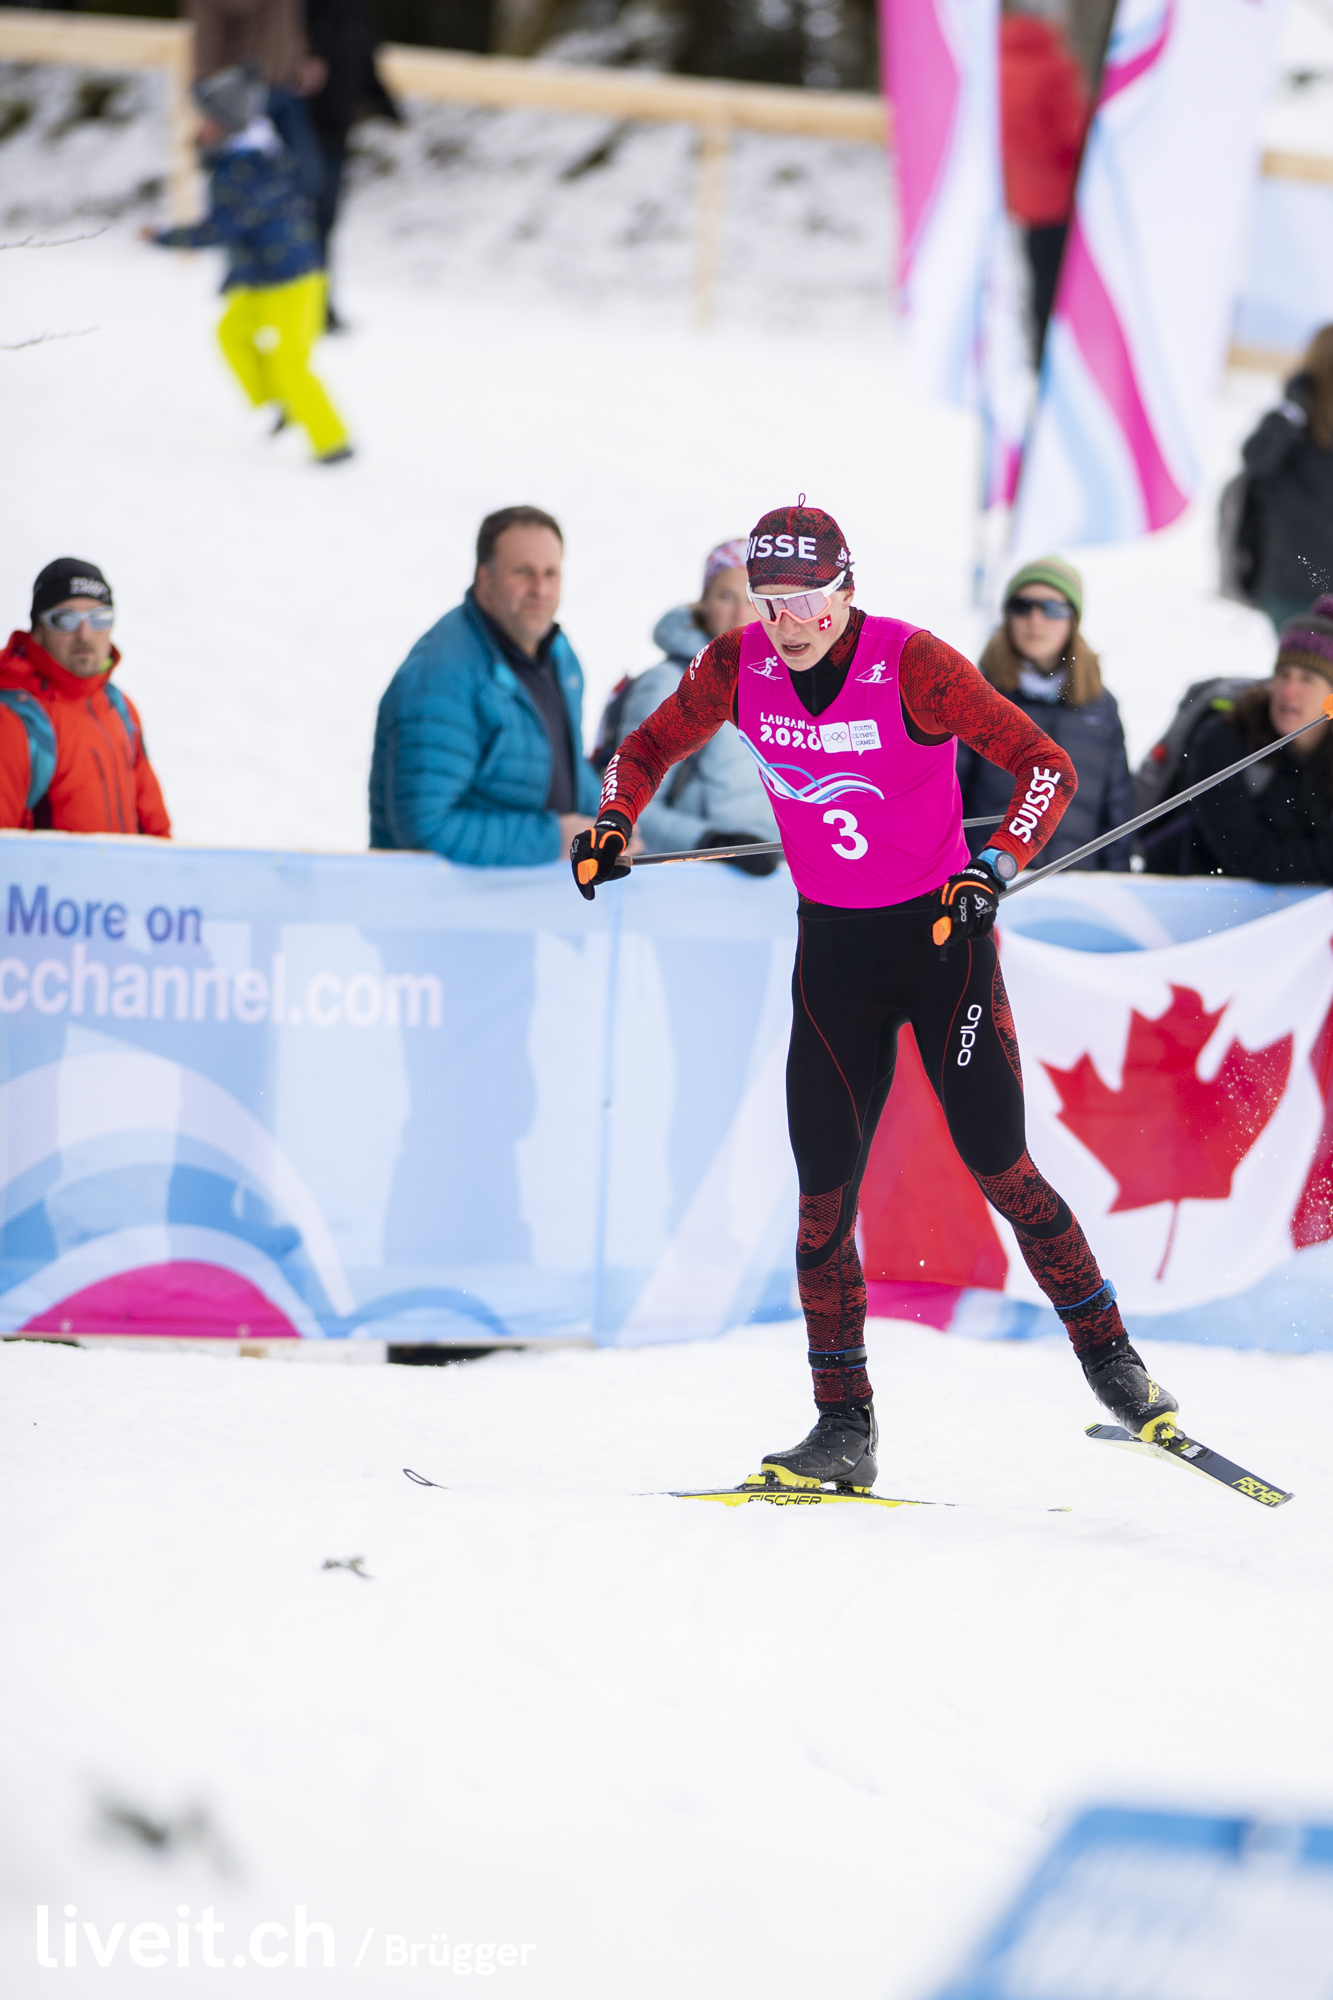 SWITZERLAND VALLEE DE JOUX YOG LAUSANNE2020 CROSS COUNTRY SKIING